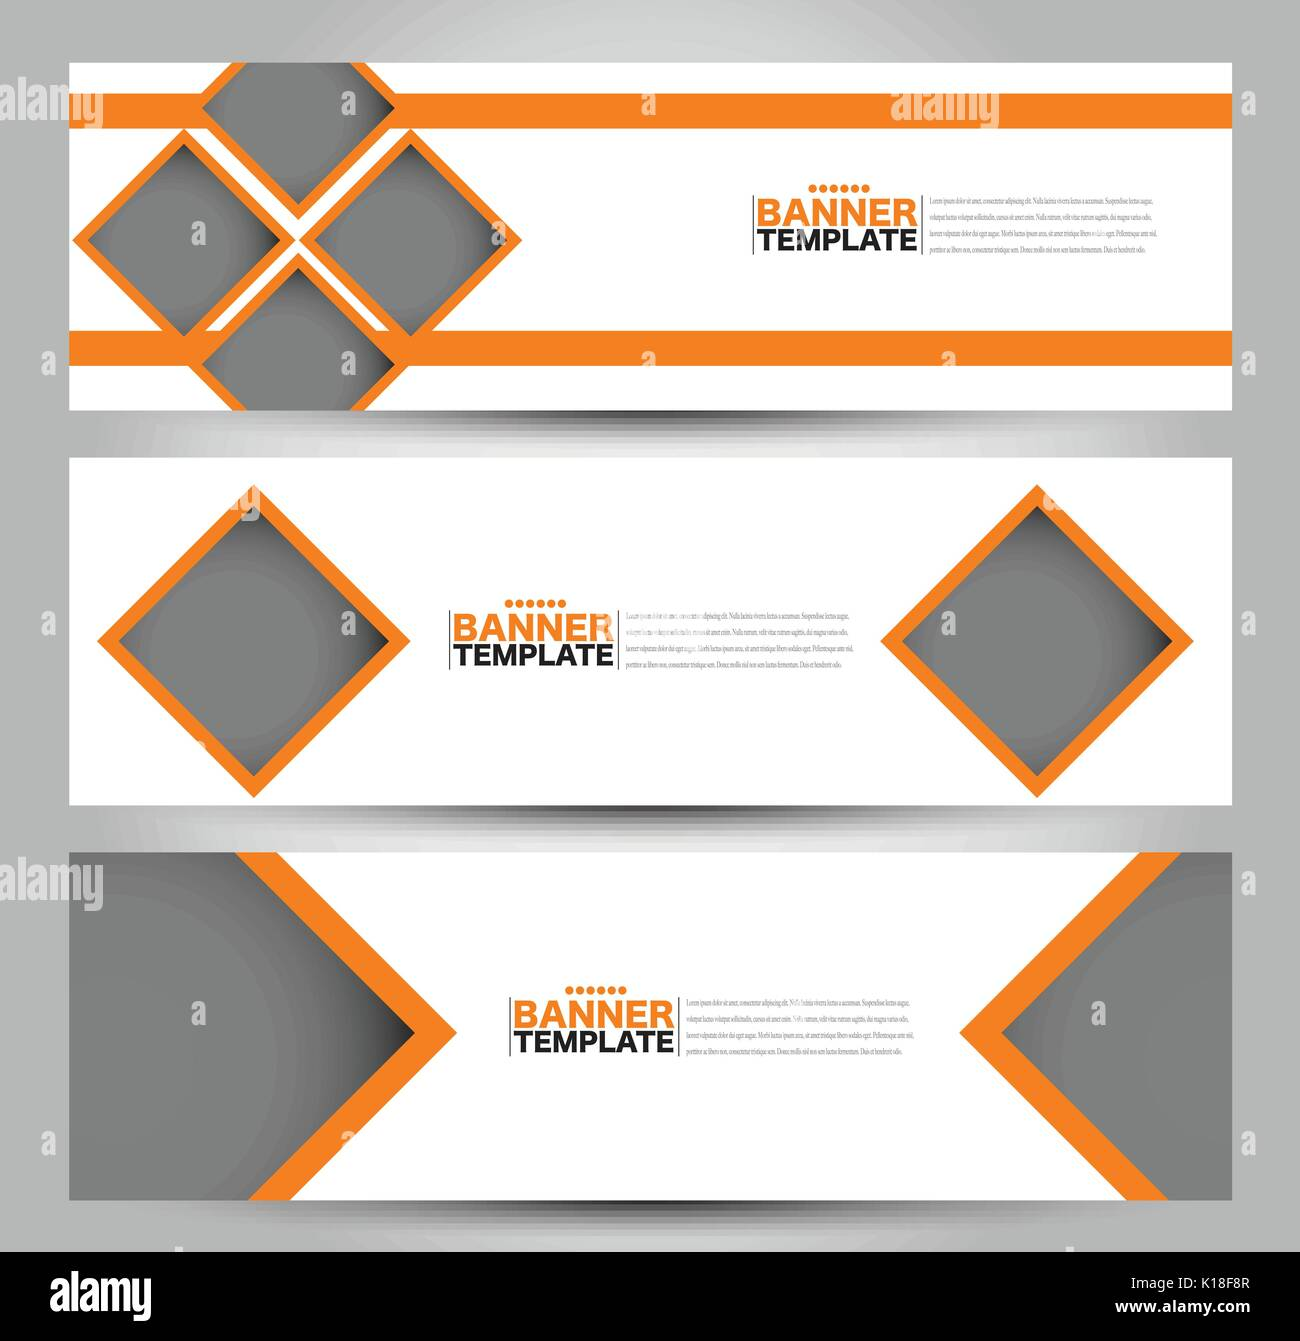 Banner Template Abstract Background For Design Business Stock Vector Image Art Alamy